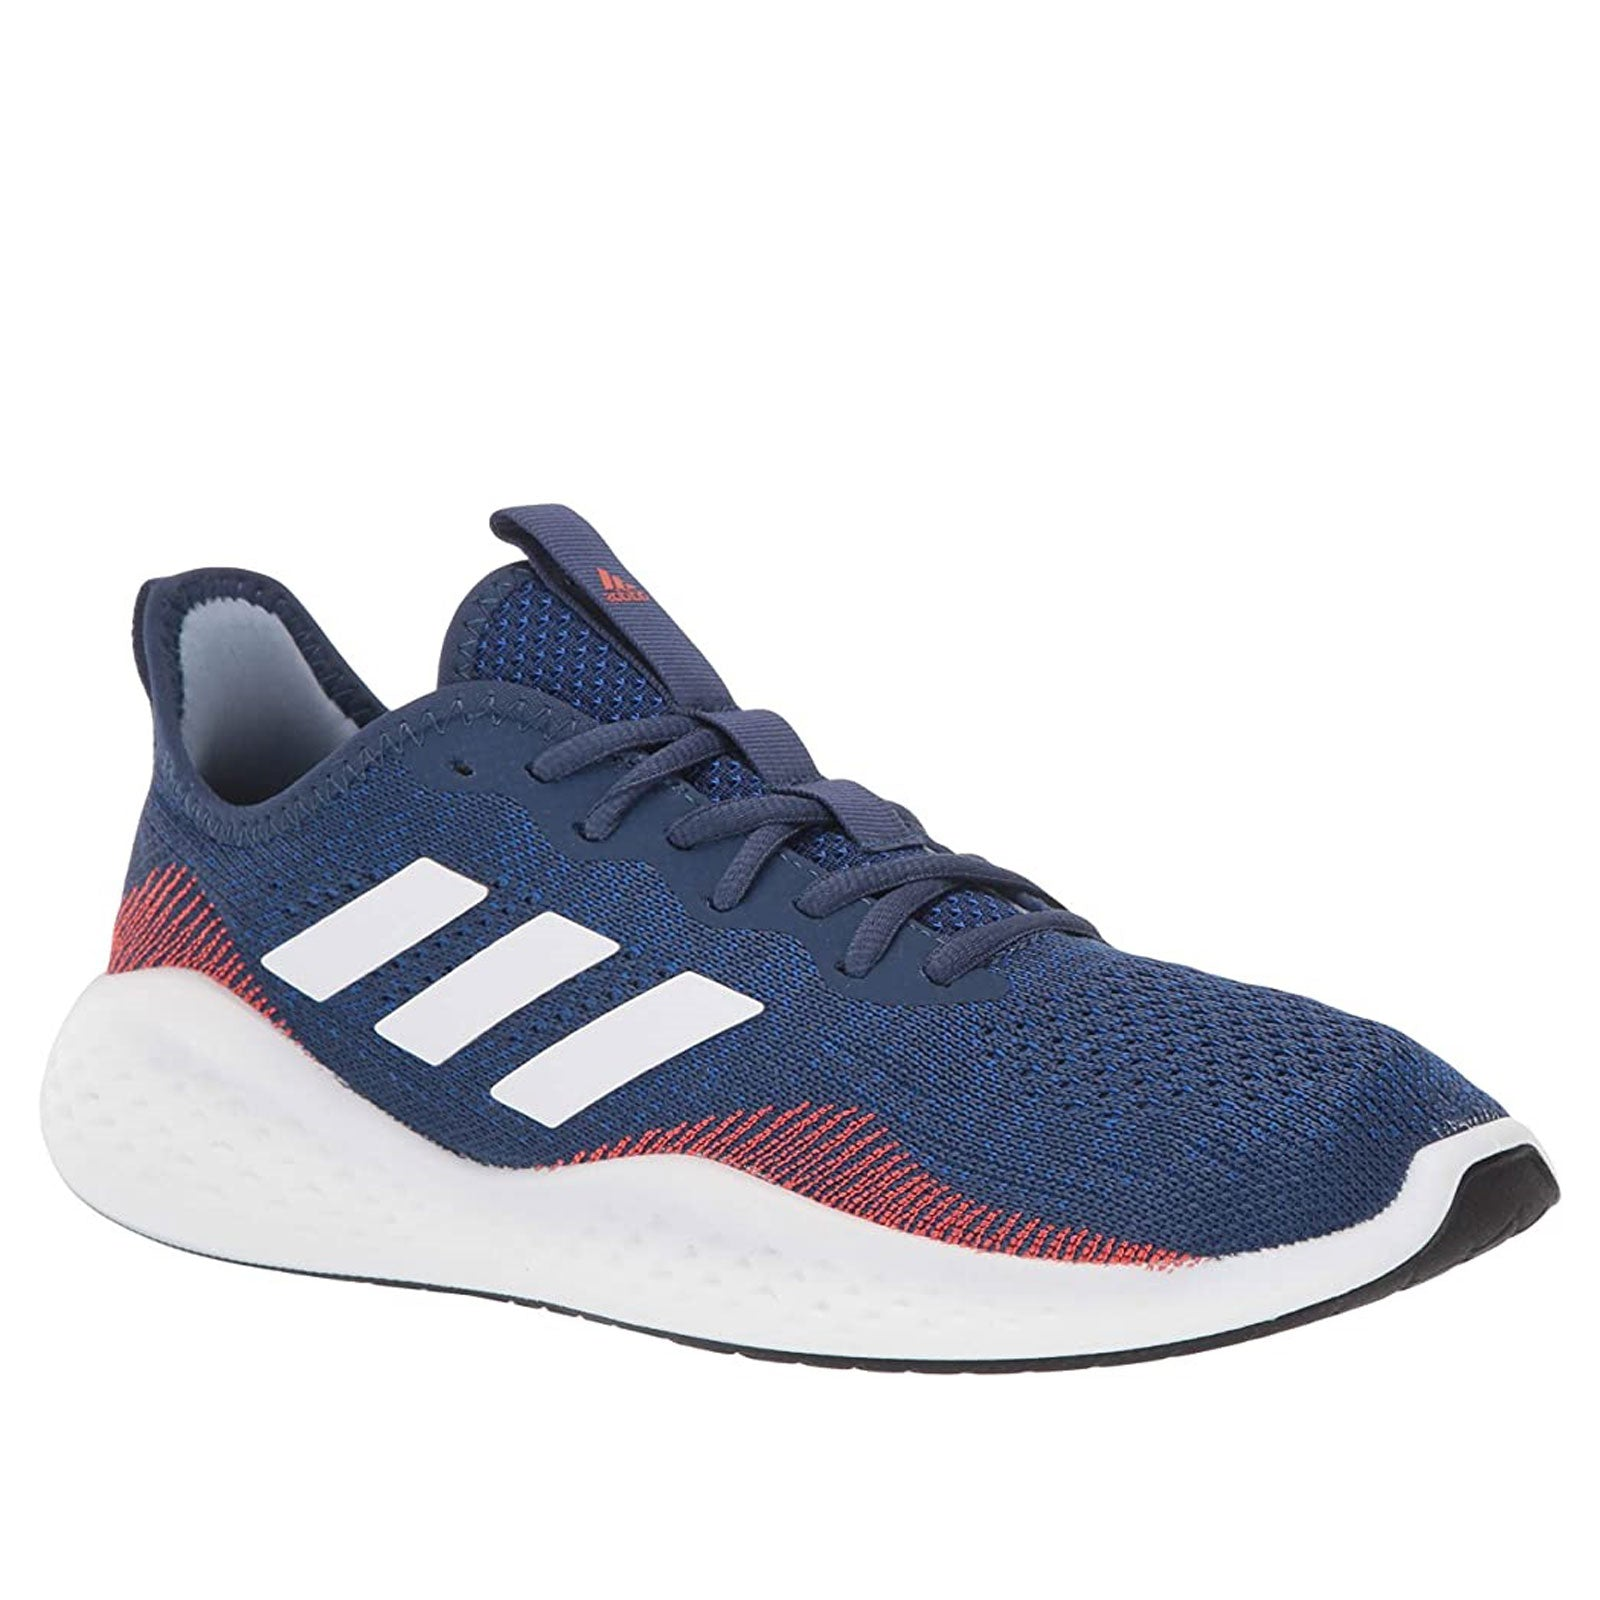 Adidas Fluidflow FW5079 (Tech Indigo / Cloud White / Semi Solar Red)